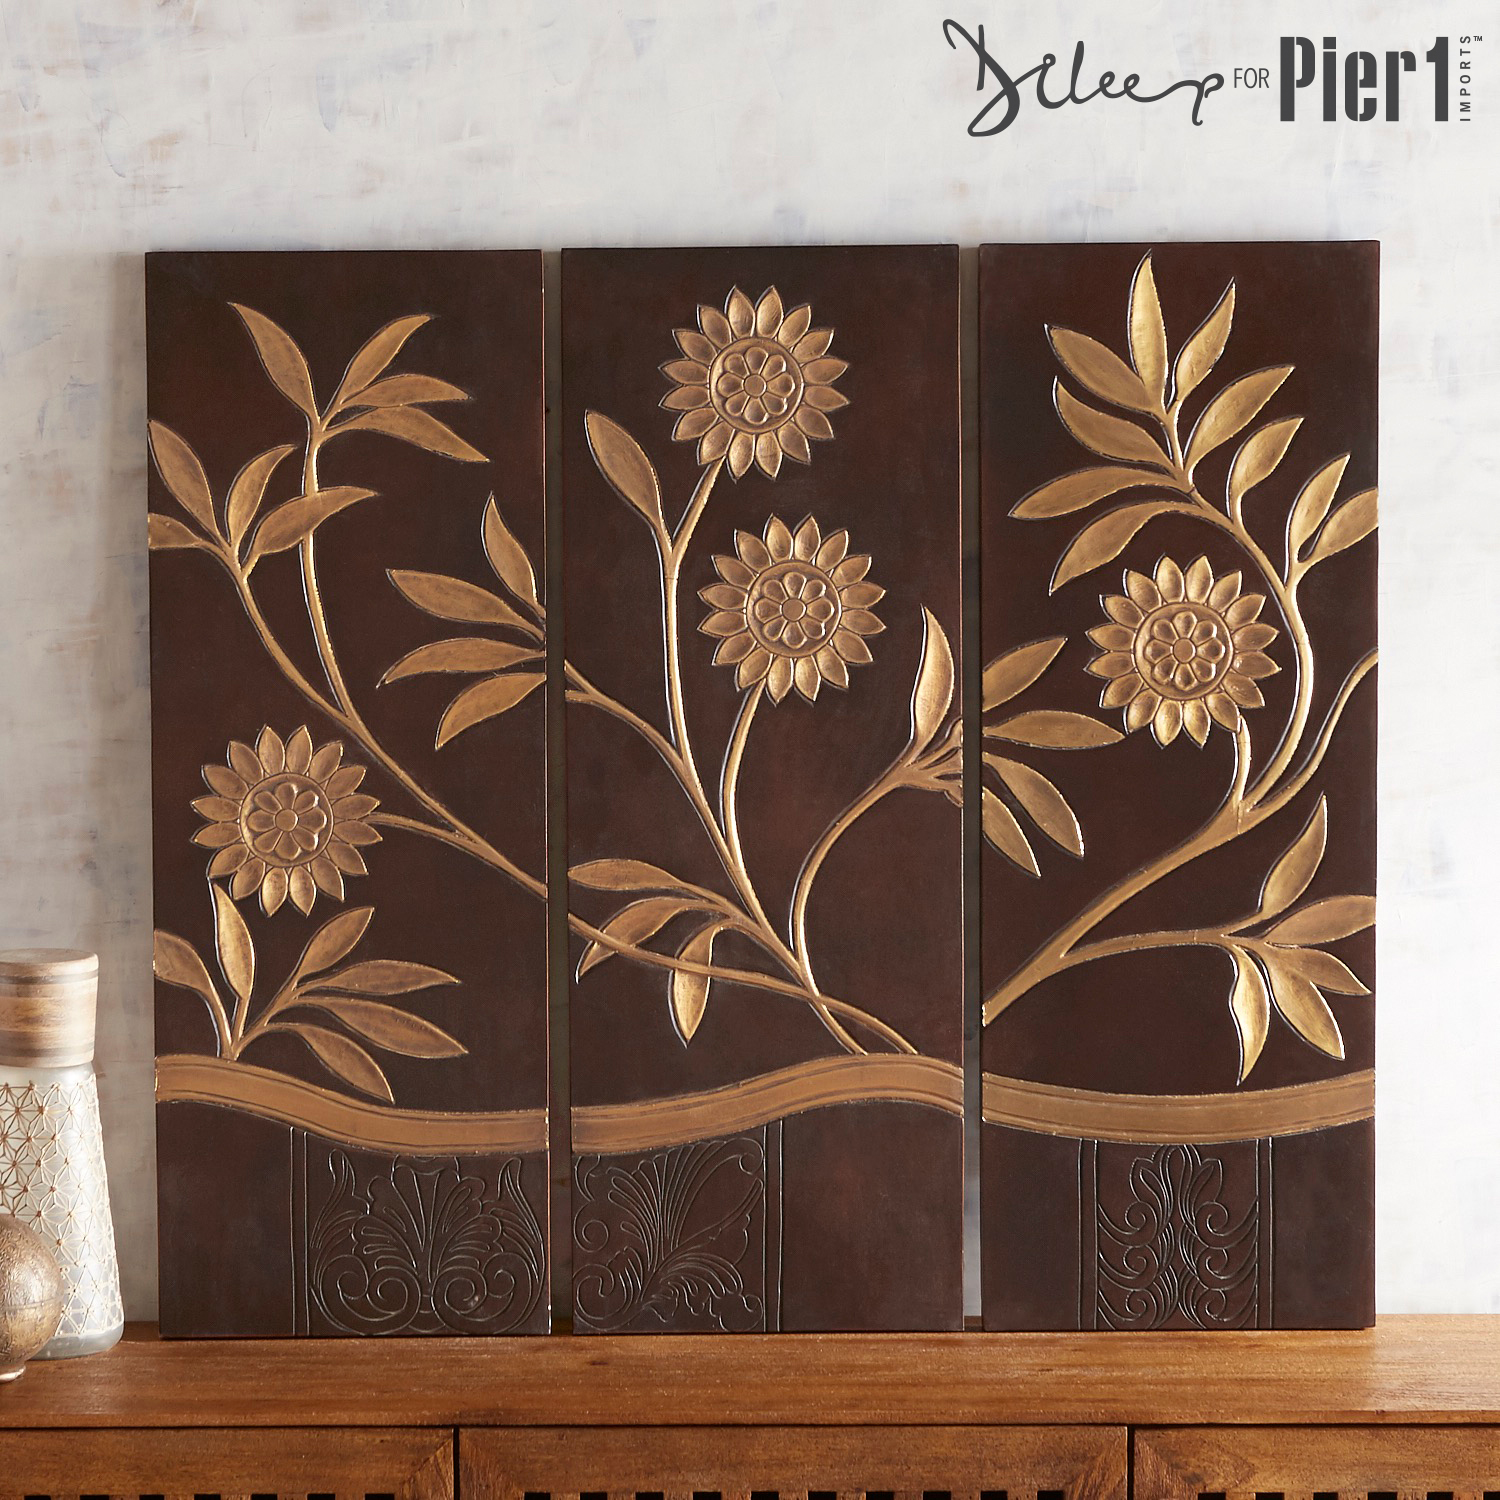 Wooden Wall Decor, Set of 3